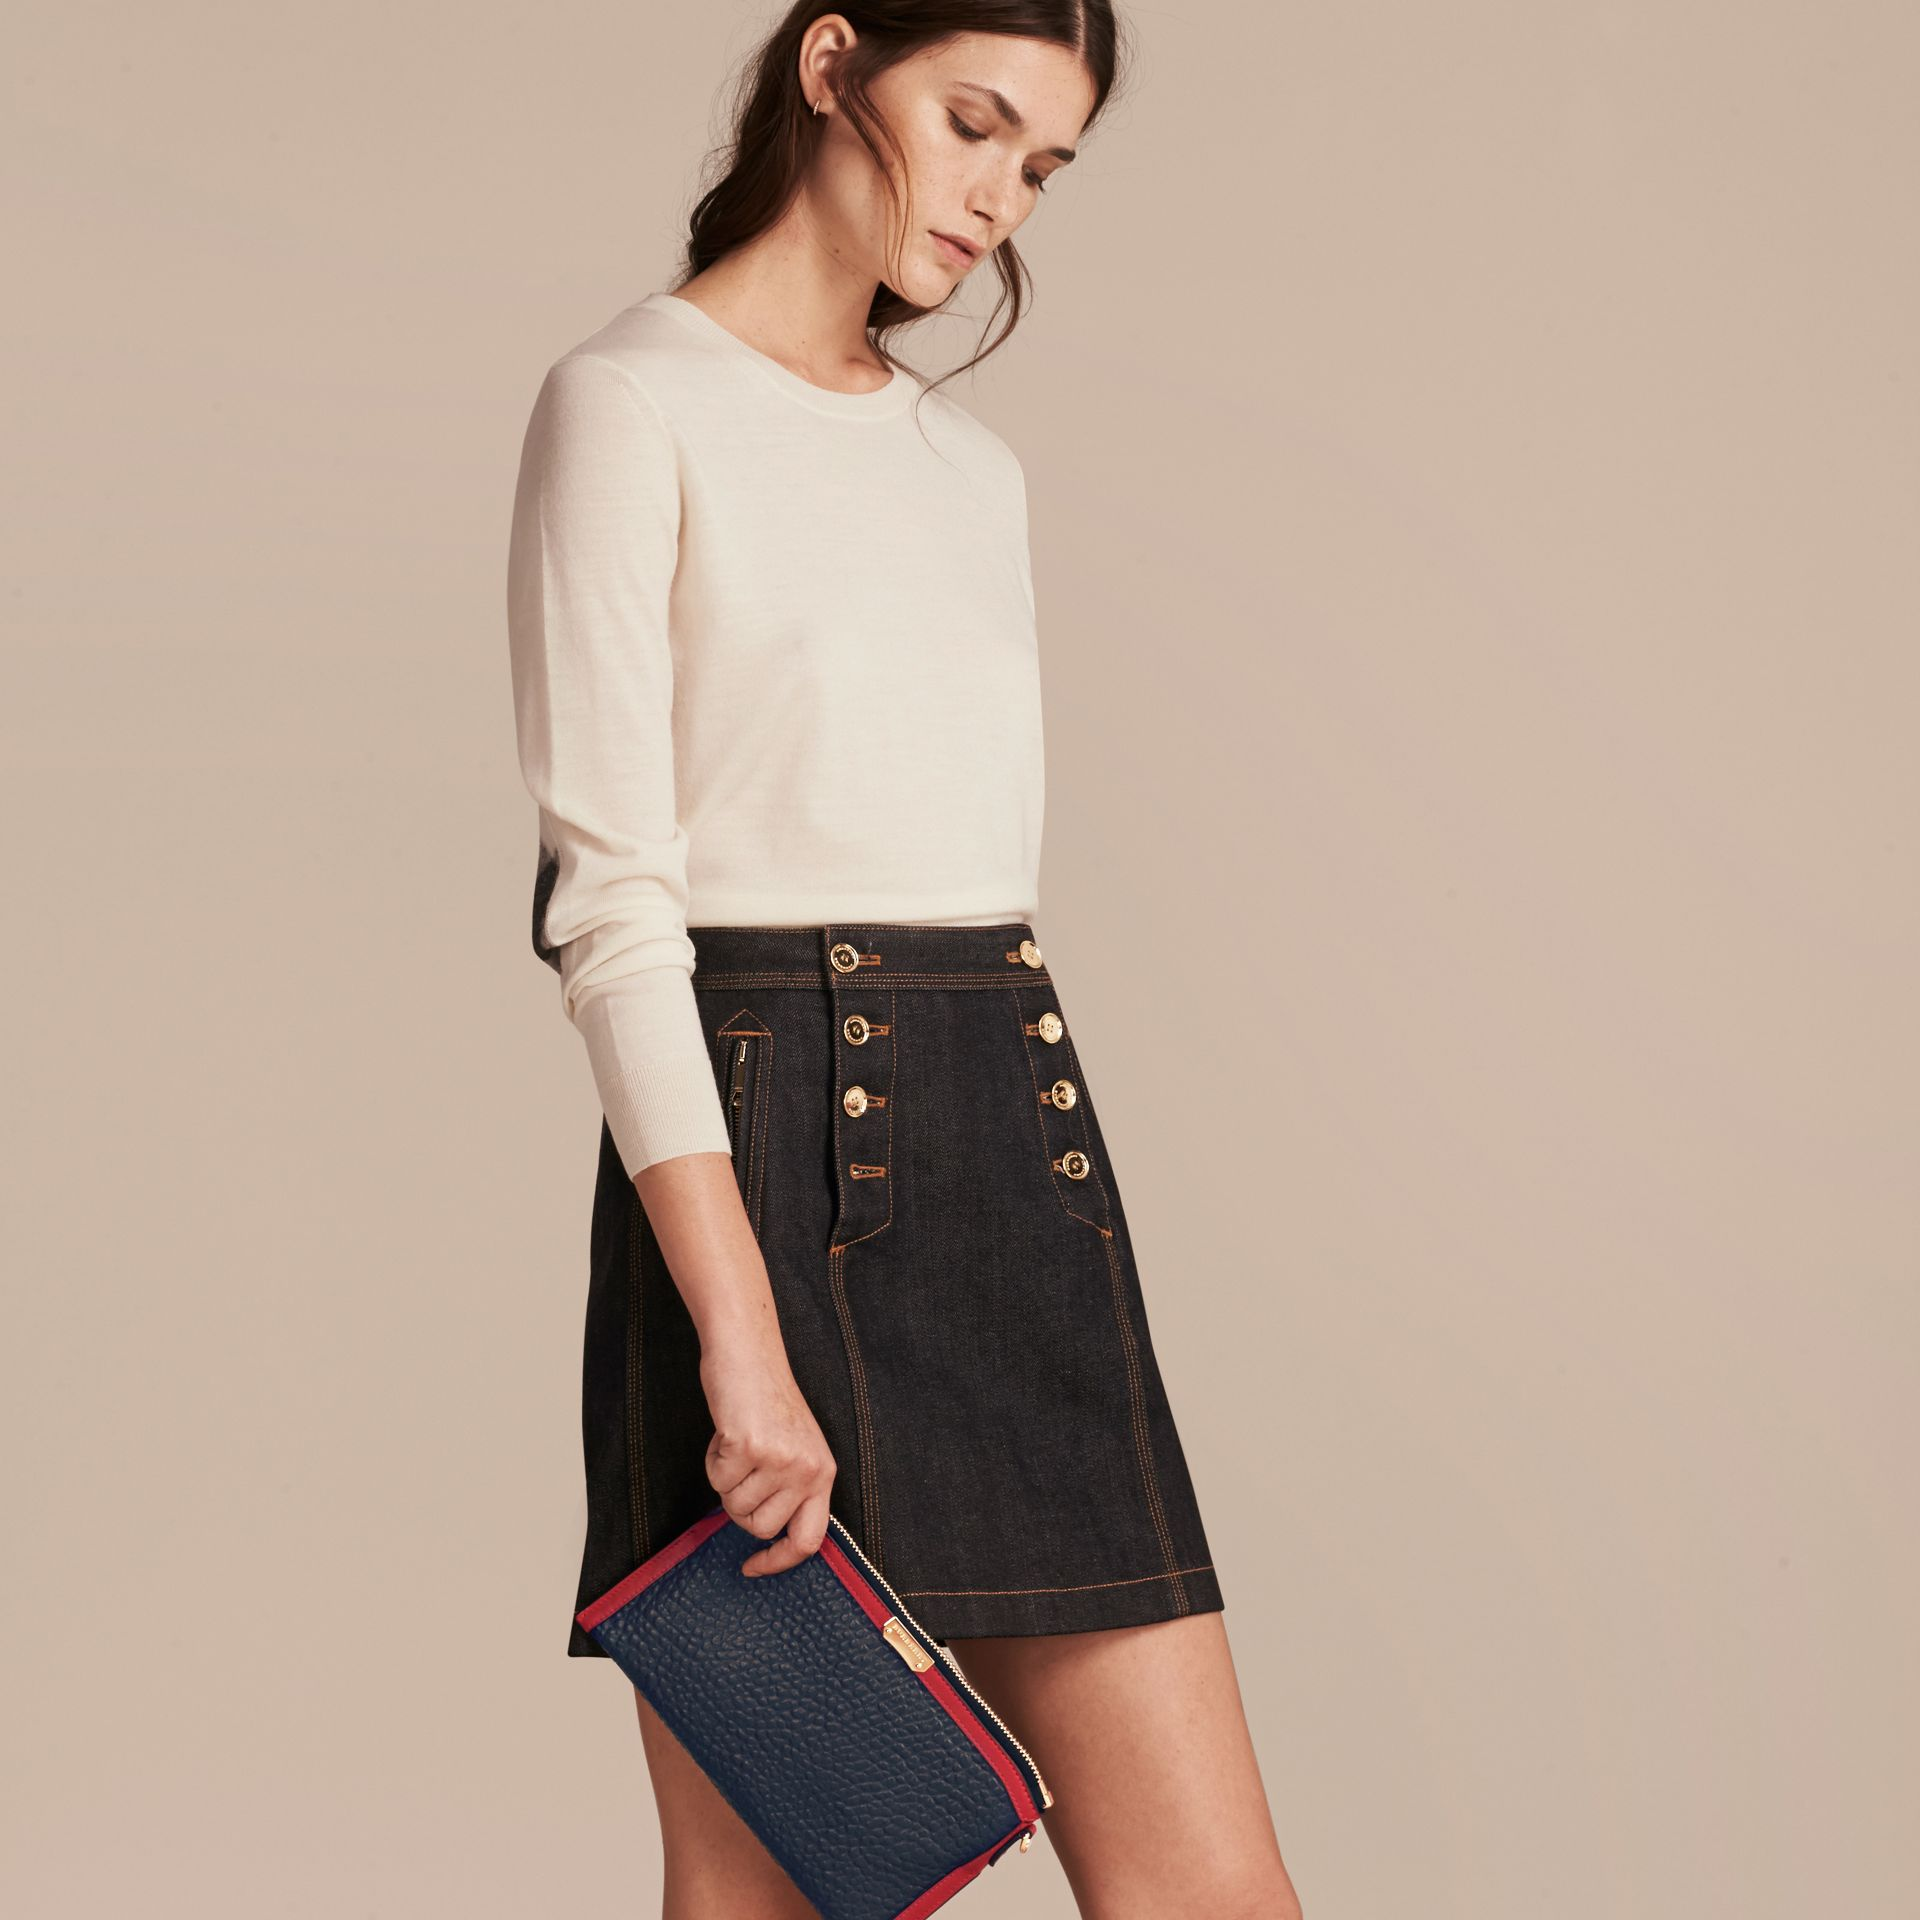 Blue crbn/parade red Contrast Border Signature Grain Leather Clutch Bag - gallery image 3